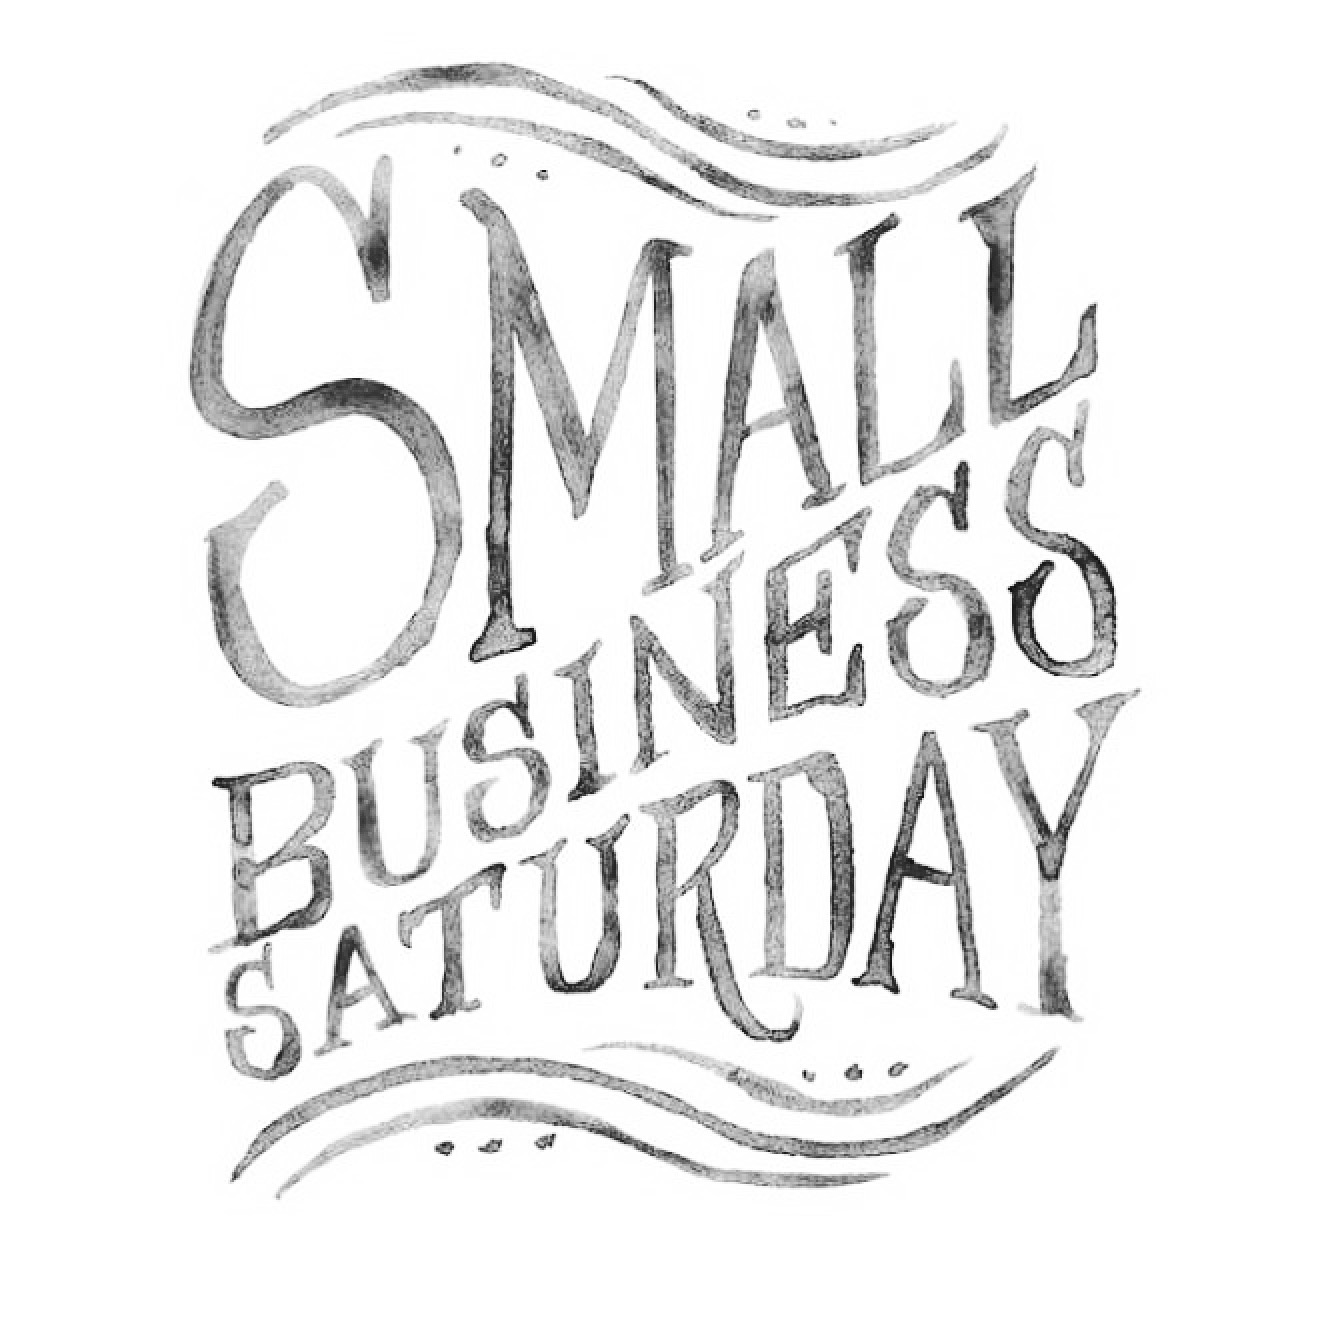 Small Business Saturday ~ Shop Small, Support Handmade This Christmas